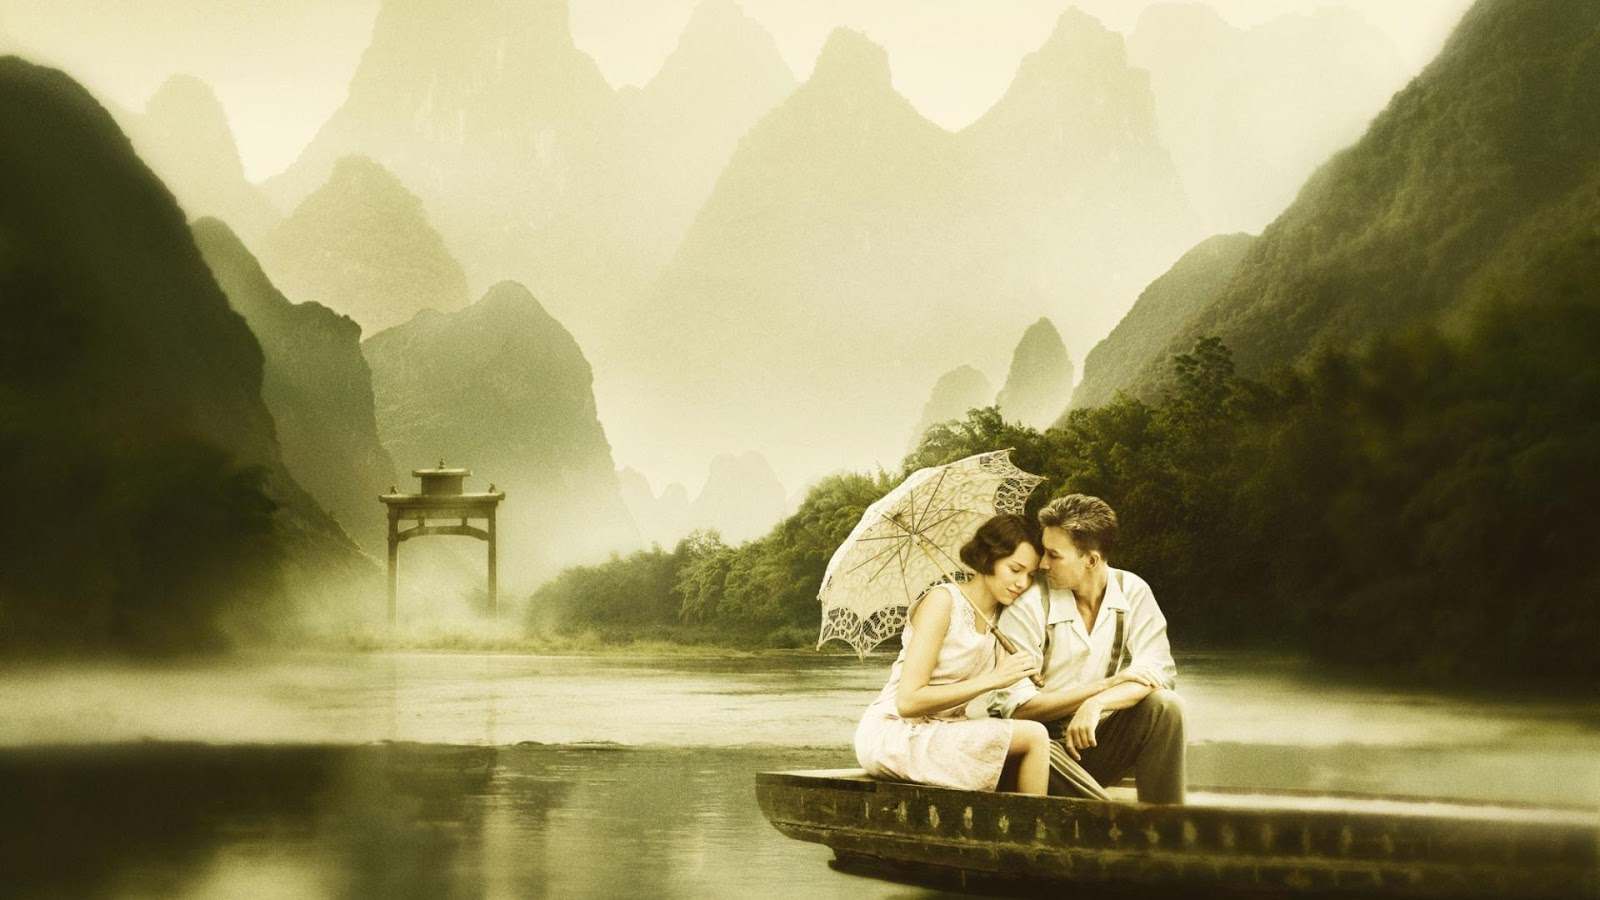 Top Wallpapers Images: most Romantic Wallapers